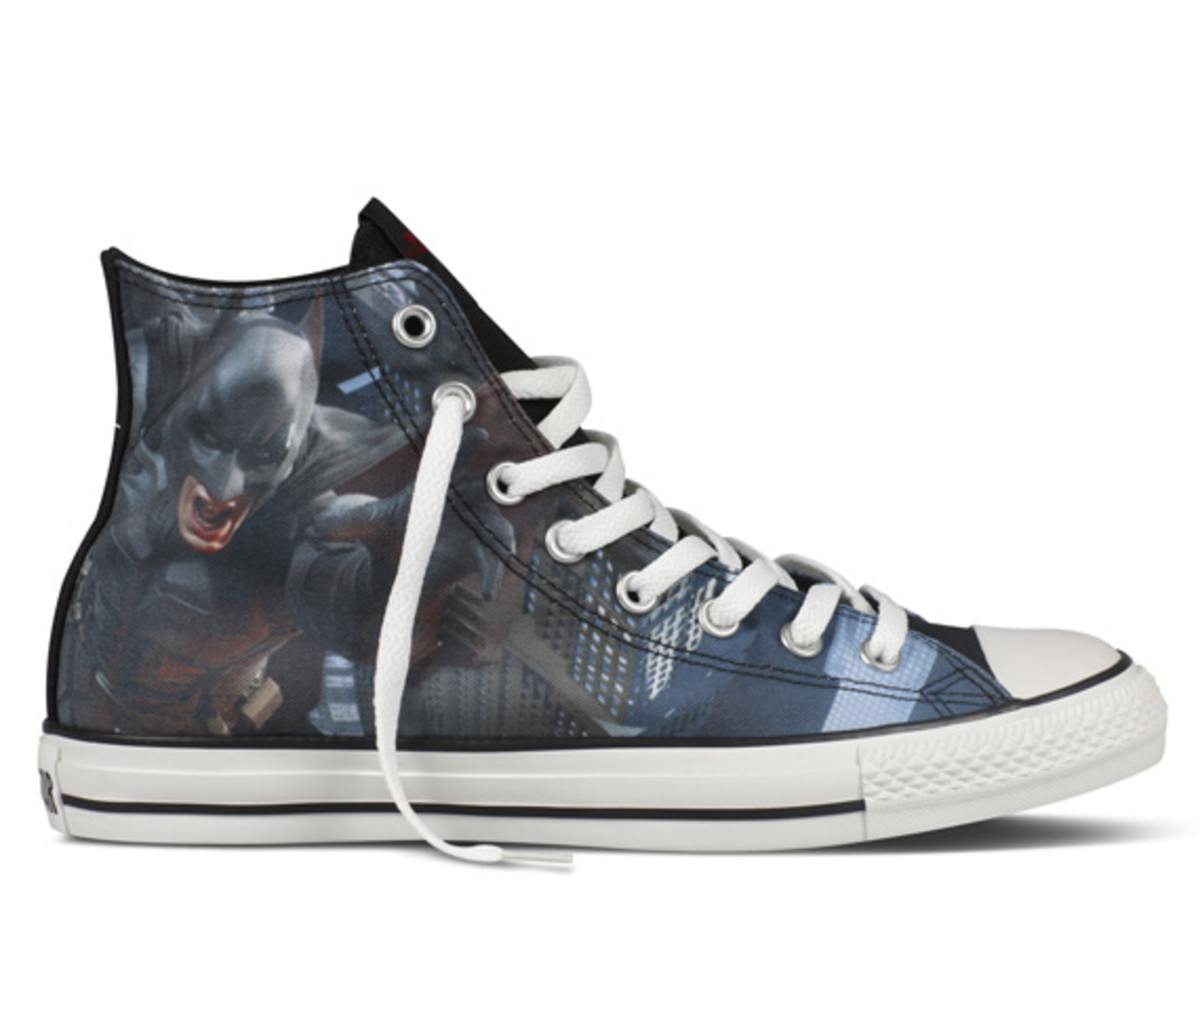 the-dark-knight-rises-converse-chuck-taylor-all-star-collection-01